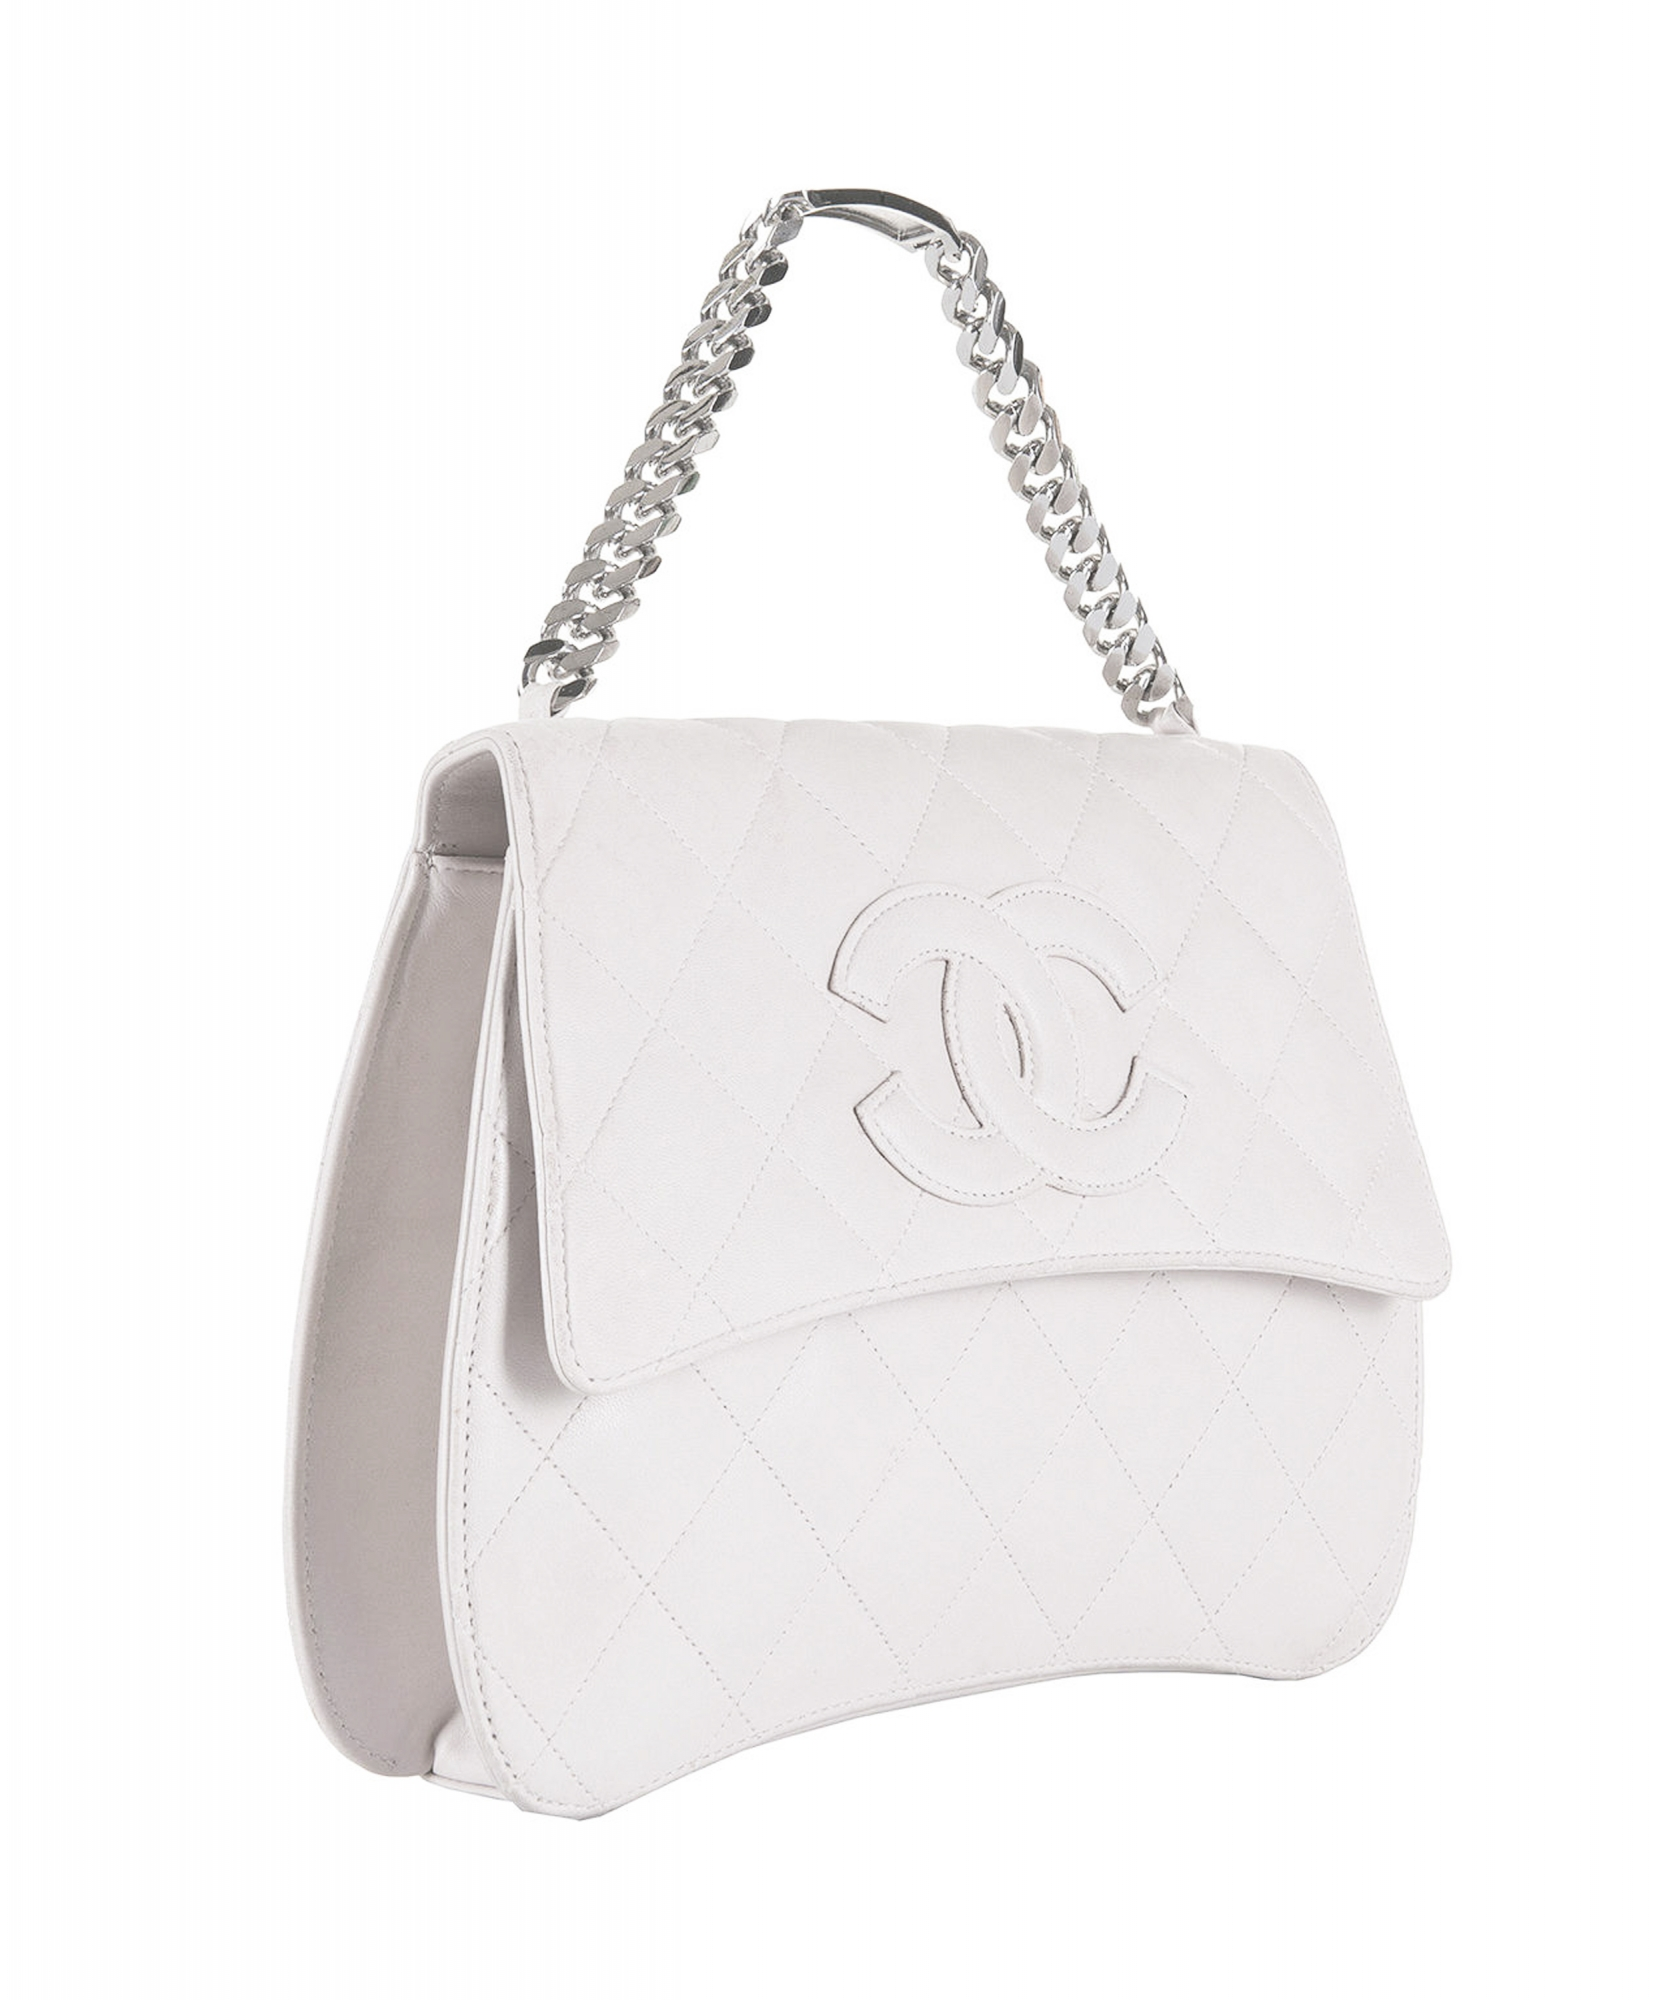 Chanel White Quilted Leather Handbag Artlistings